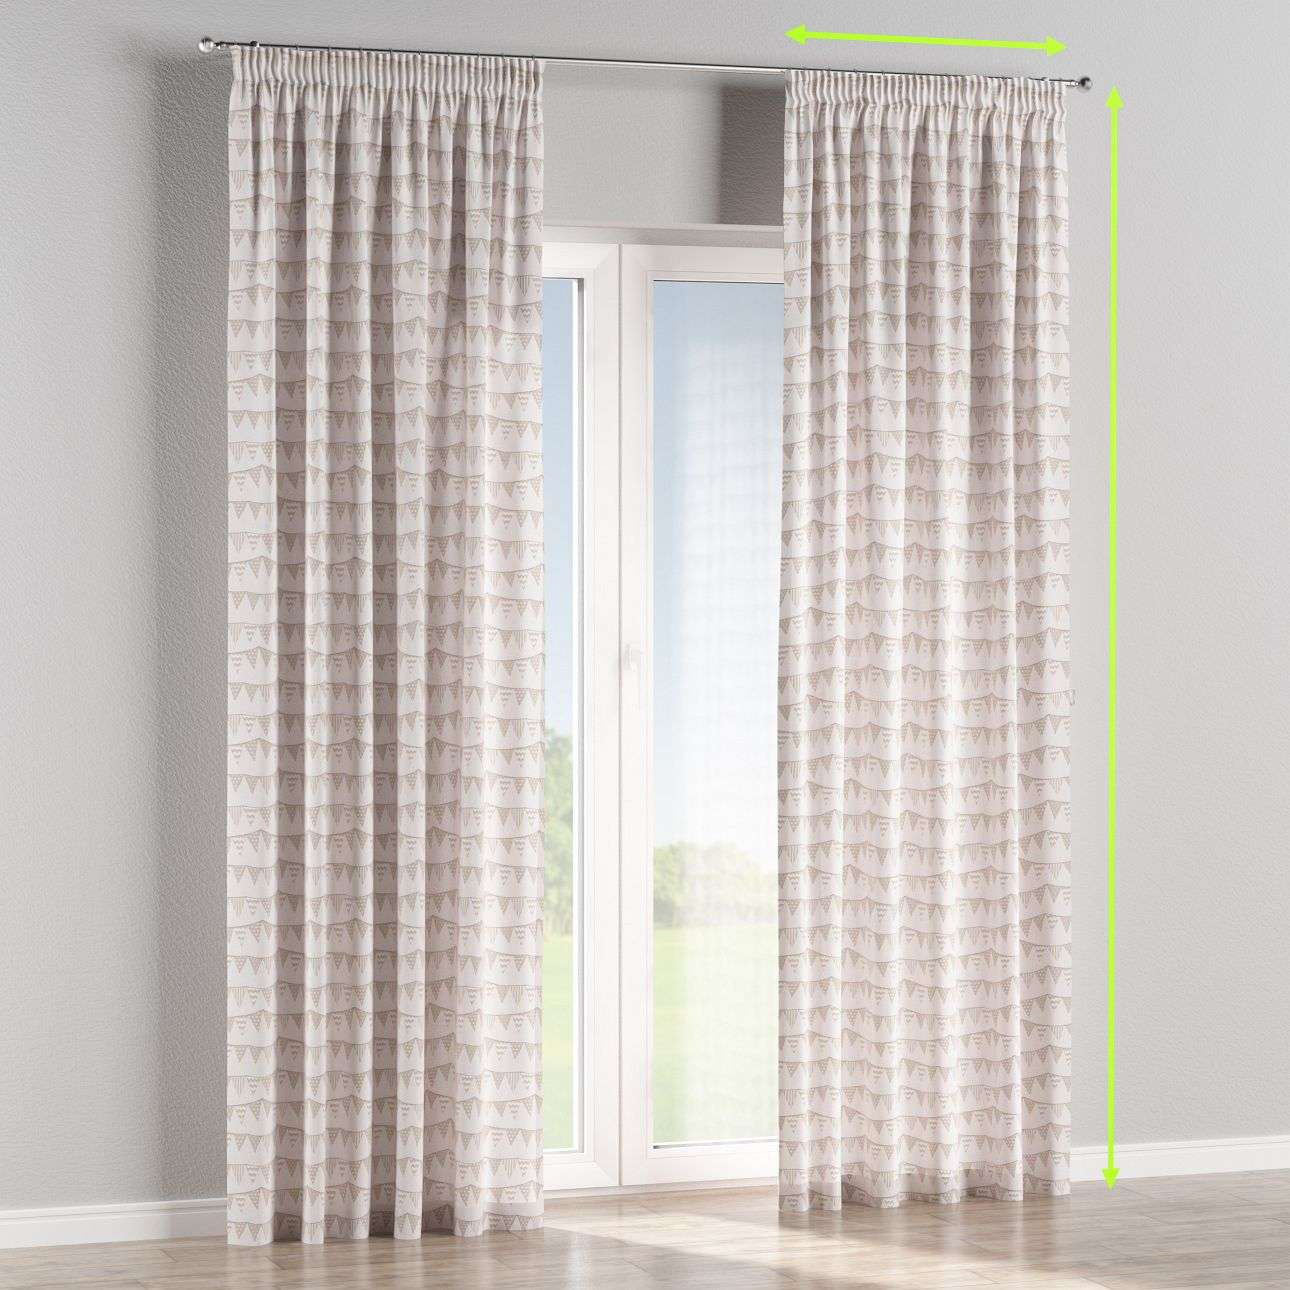 Pencil pleat curtains in collection Marina, fabric: 140-65